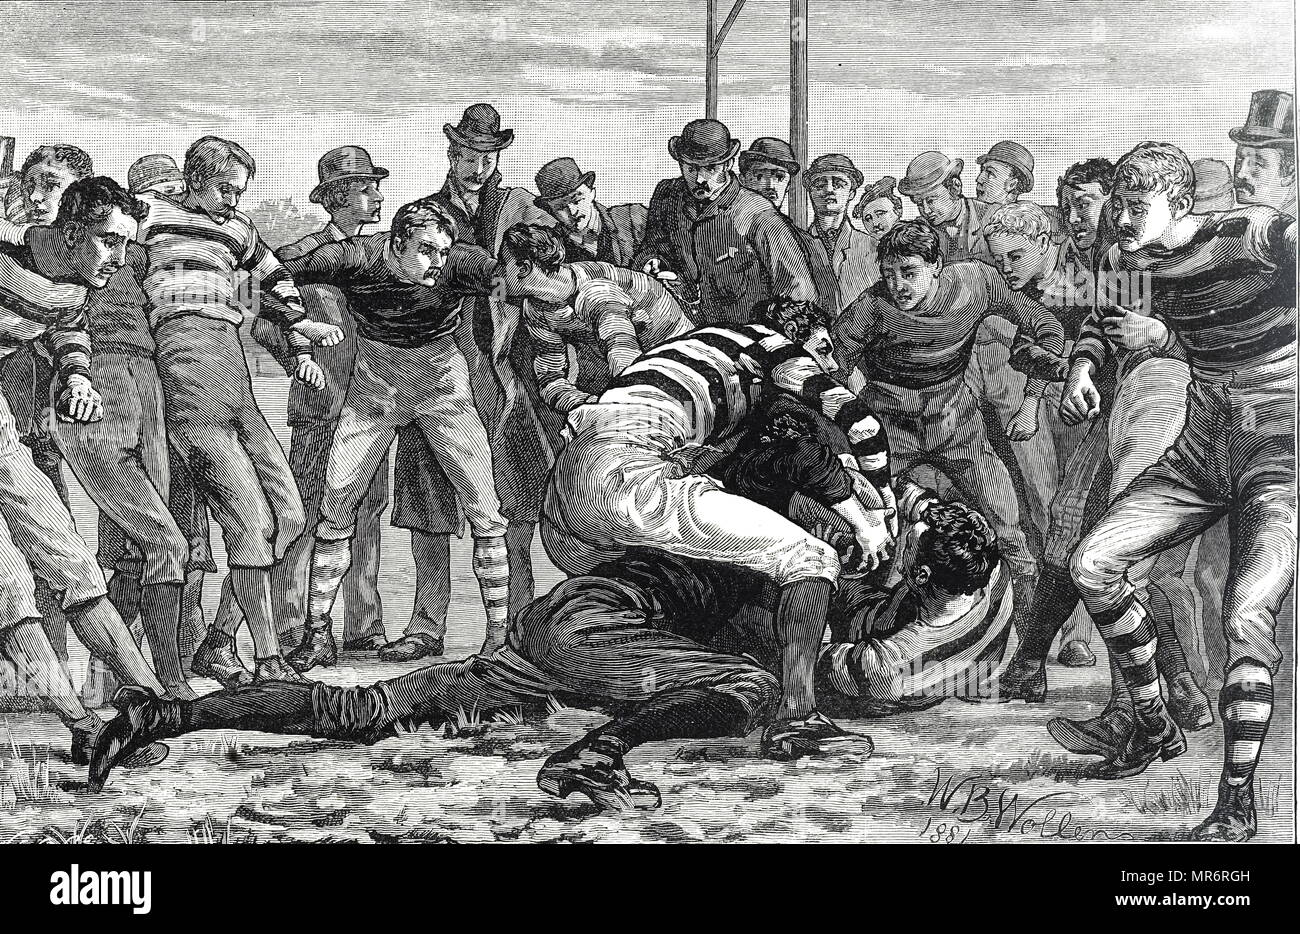 Engraving depicting men playing rugby. The Rugby Union rules mean that defenders try to prevent the opposition making a try. Dated 19th century - Stock Image